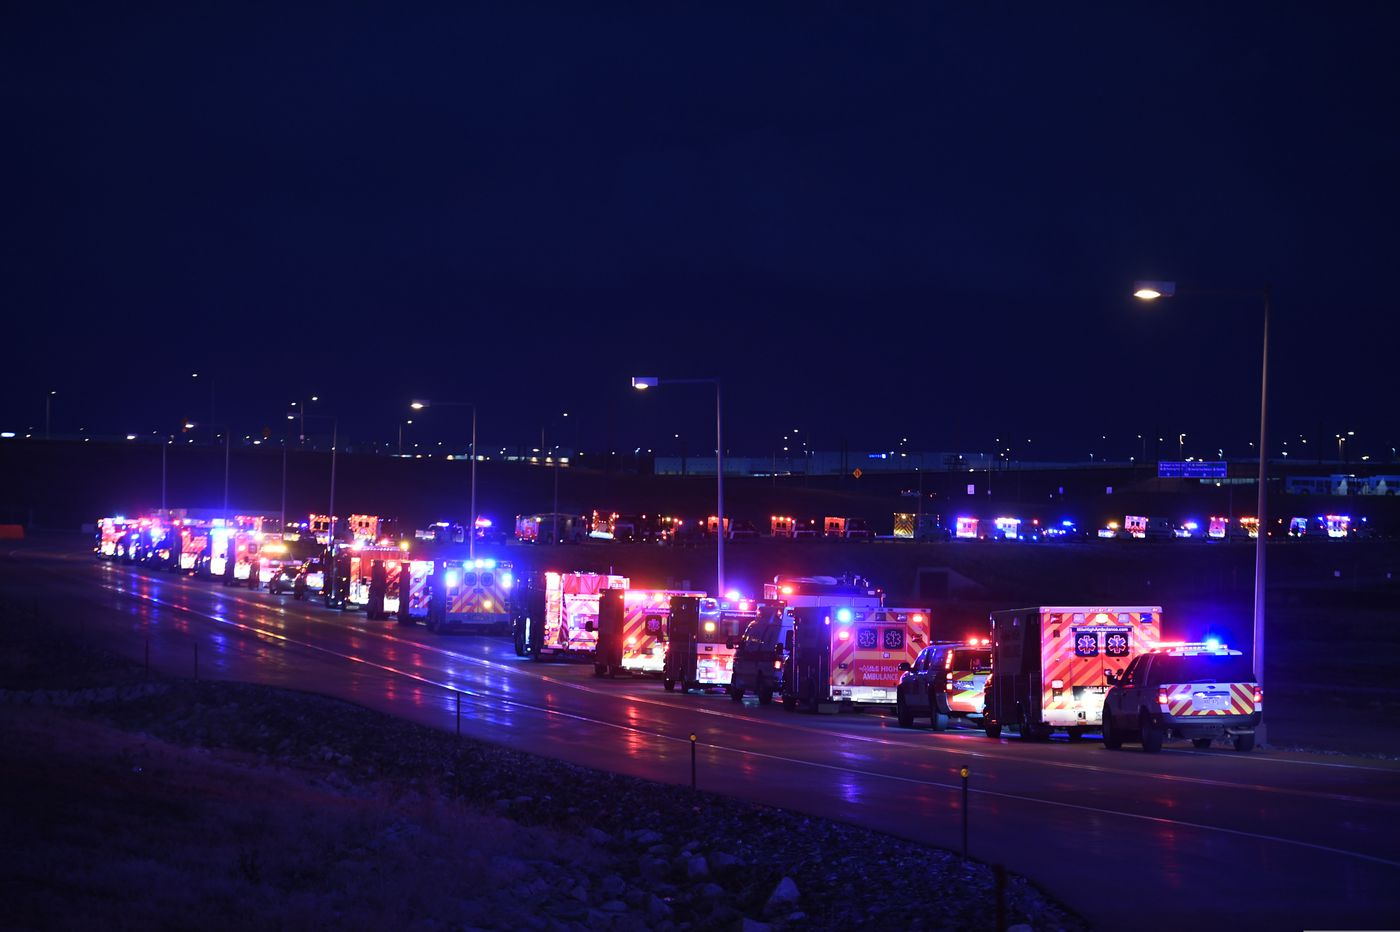 A paramedic drove 1,800 miles to help fight coronavirus. Sunday, a funeral procession carried him home.